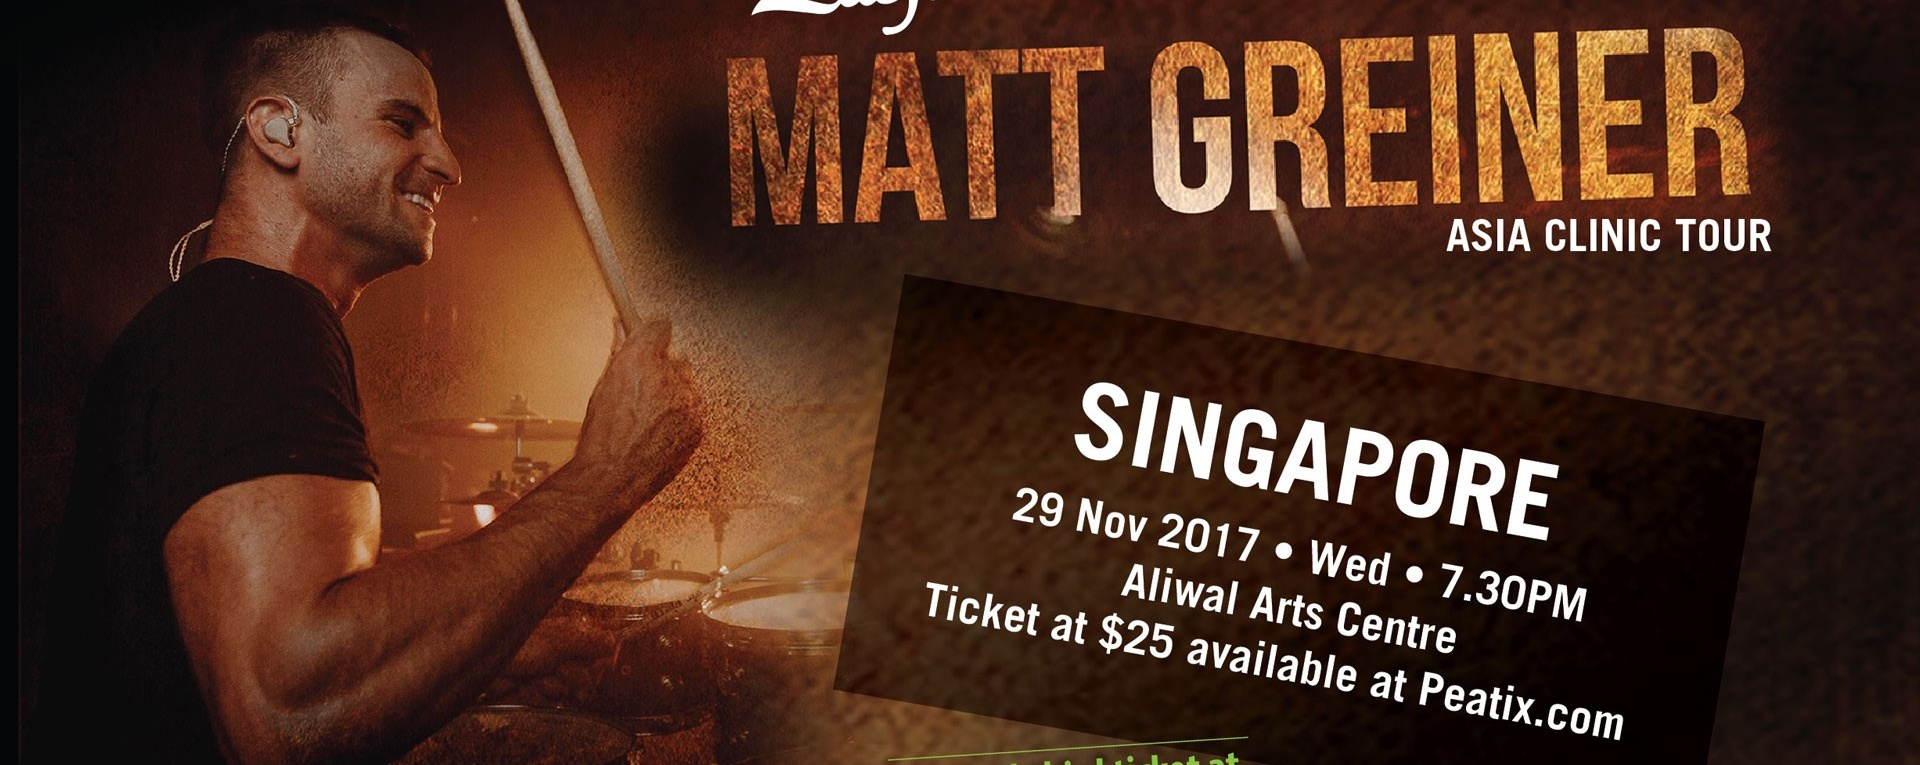 Matt Greiner Asia Clinic Tour 2017